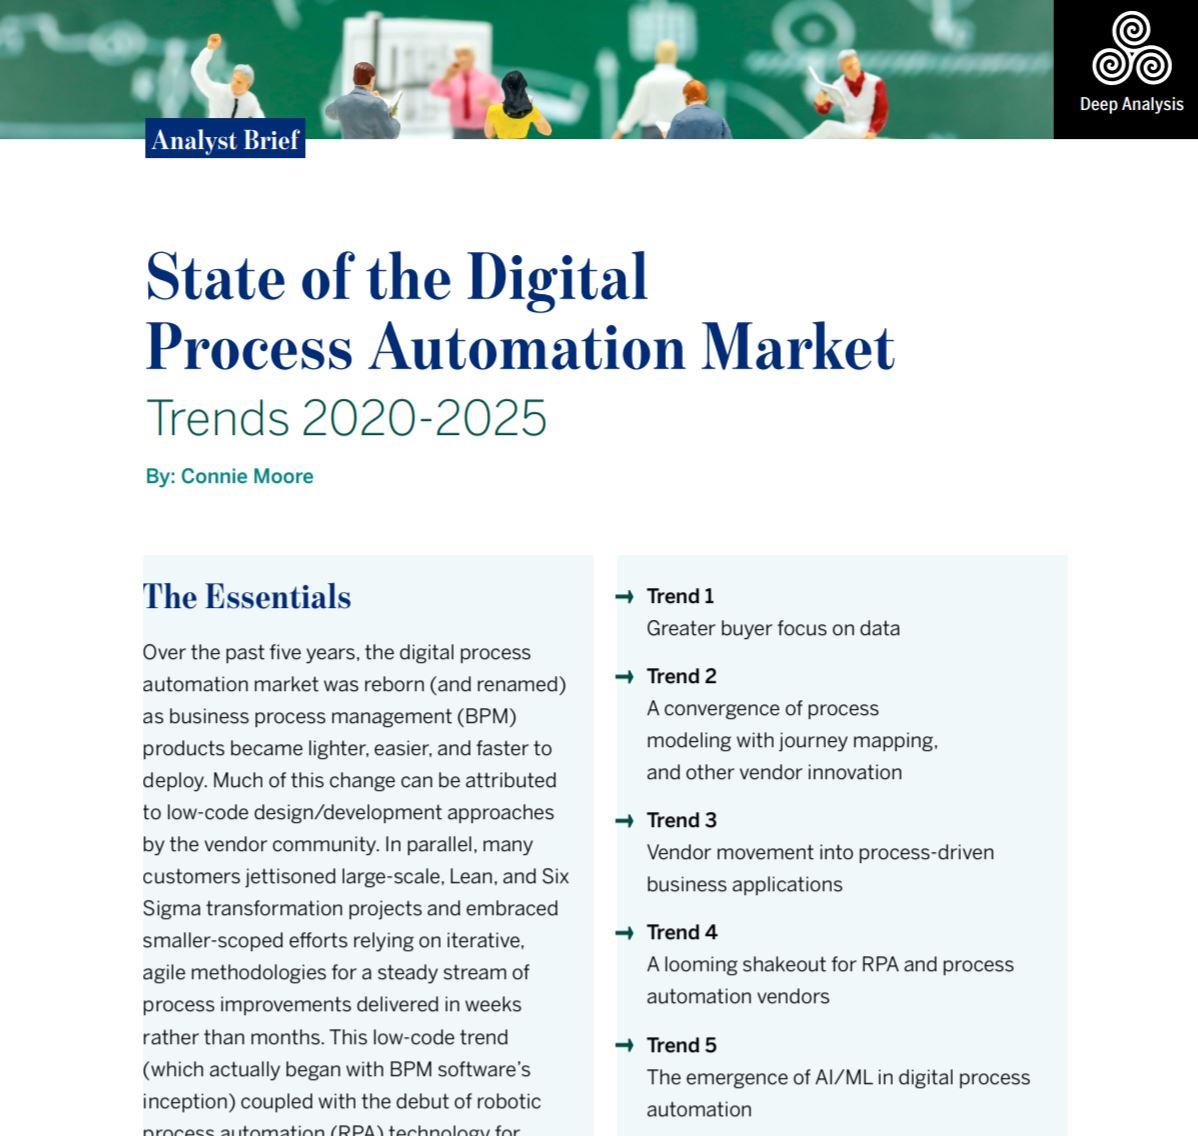 Der Markt für Digital Process Automation